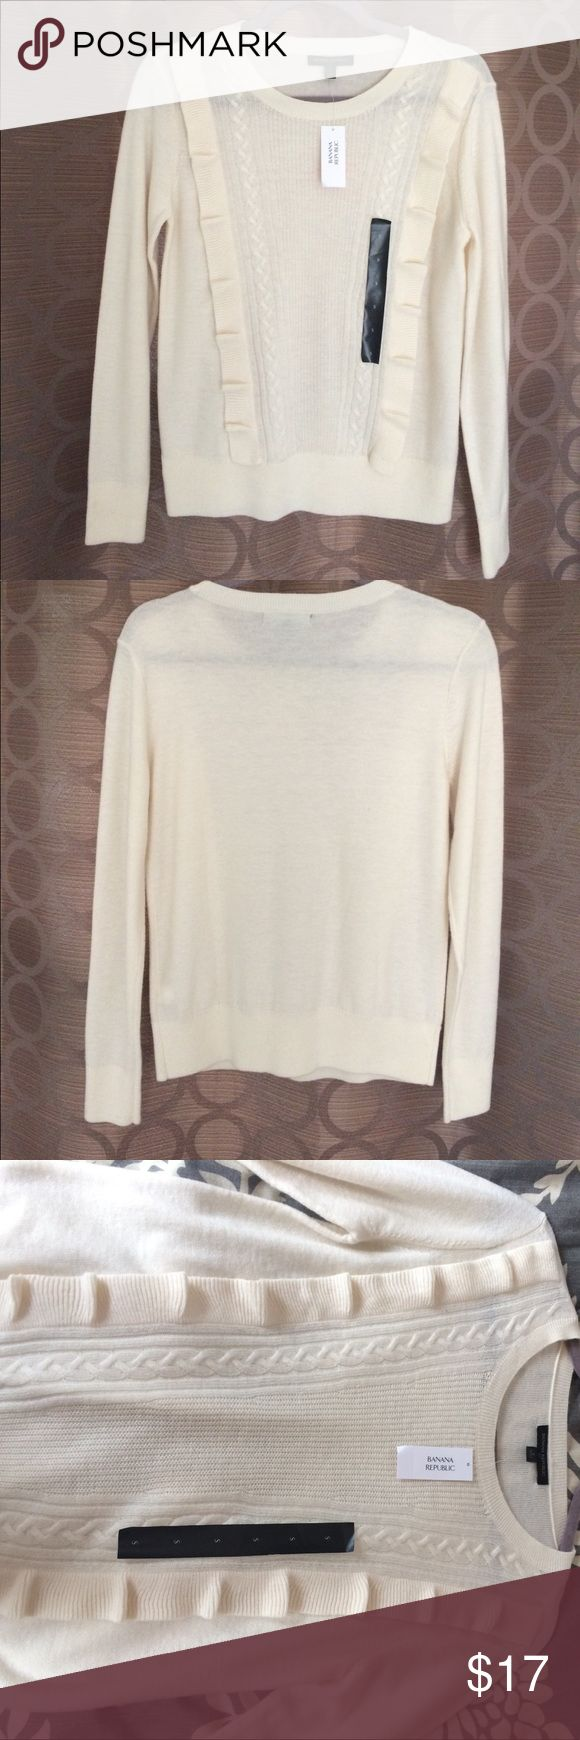 ⭐️beautiful design ⭐️ BANANA REPUBLIC This sweater is so beautiful and stylish. Definite a good addition for your closet! And comes with a super good price 😉 Banana Republic Sweaters Crew & Scoop Necks